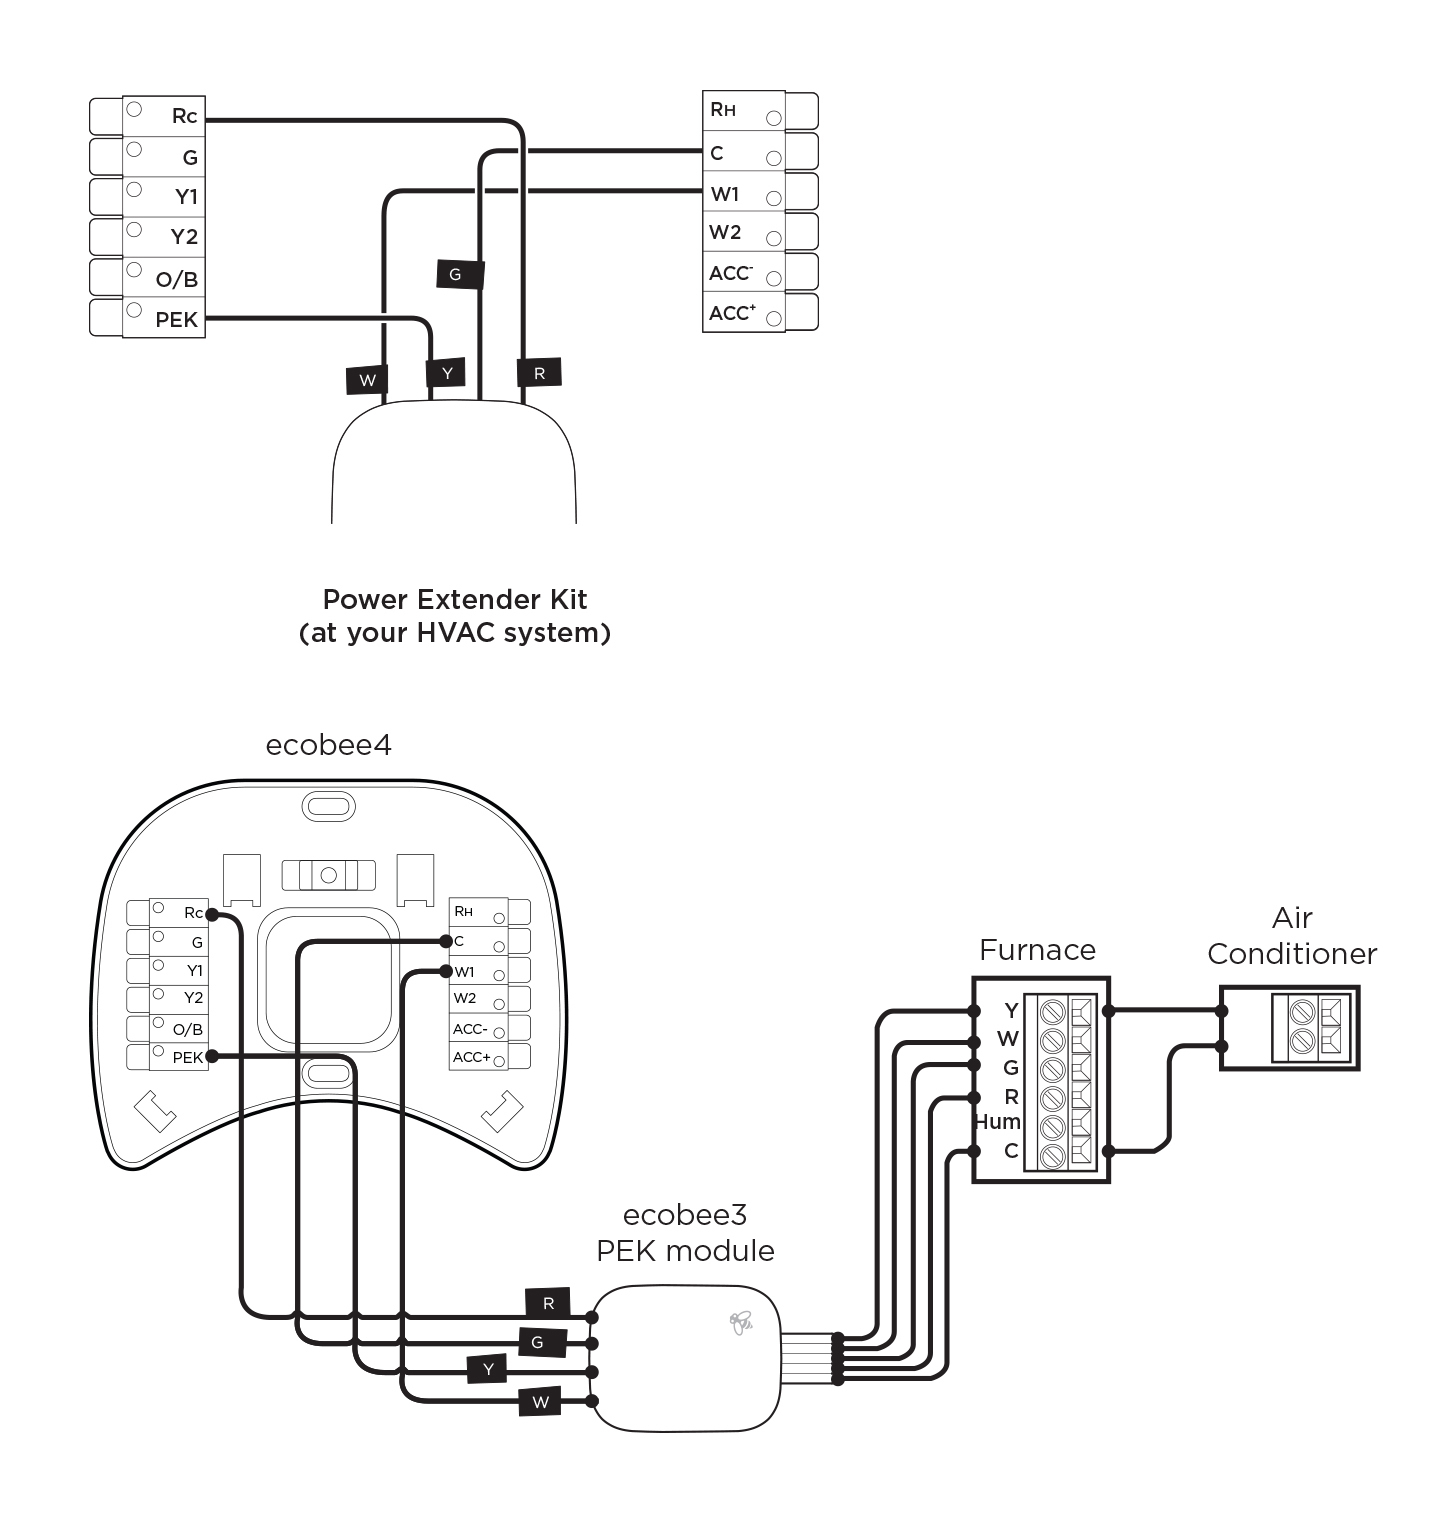 I'm Upgrading From Ecobee3 To Ecobee4, What Wiring Changes Do I Need - Ecobee3 Wiring Diagram